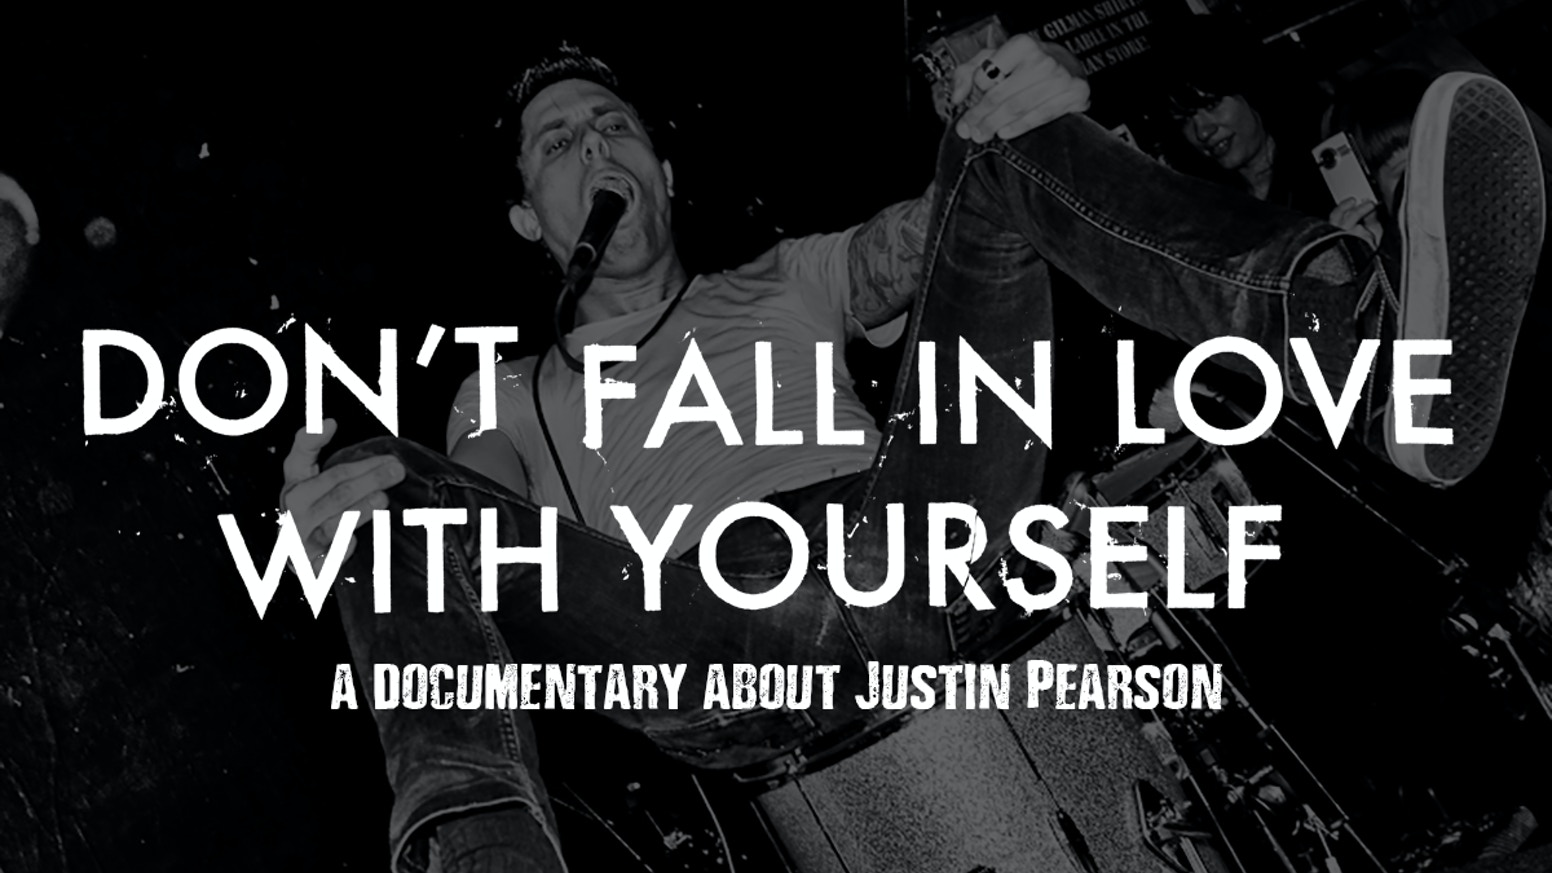 A documentary about Justin Pearson, Three One G and the San Diego Punk Scene.